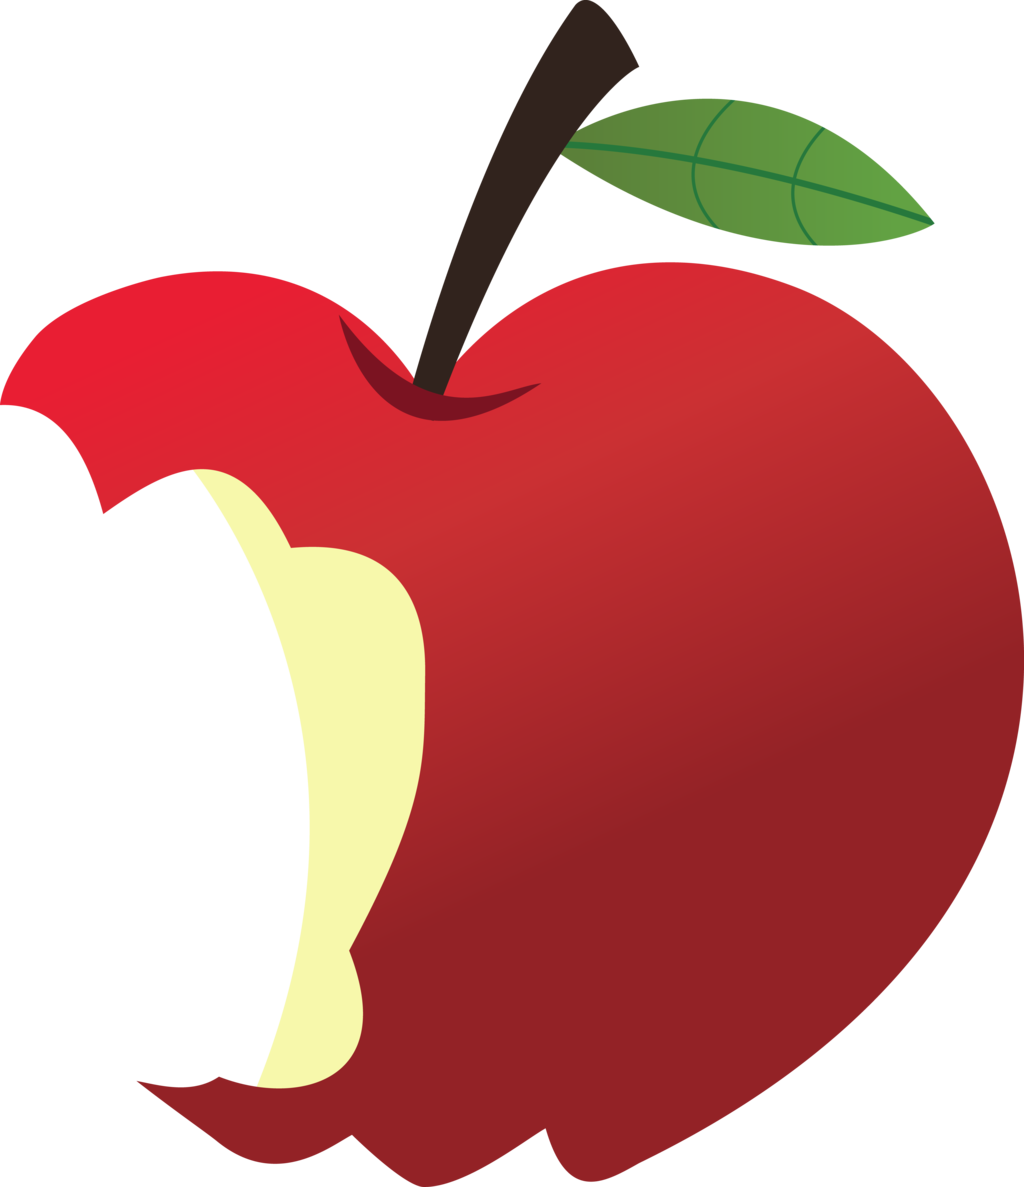 Heart apple clipart png library stock Bitten Apple Clipart - Imagens de clip art gratuitas | PINTURA EM ... png library stock